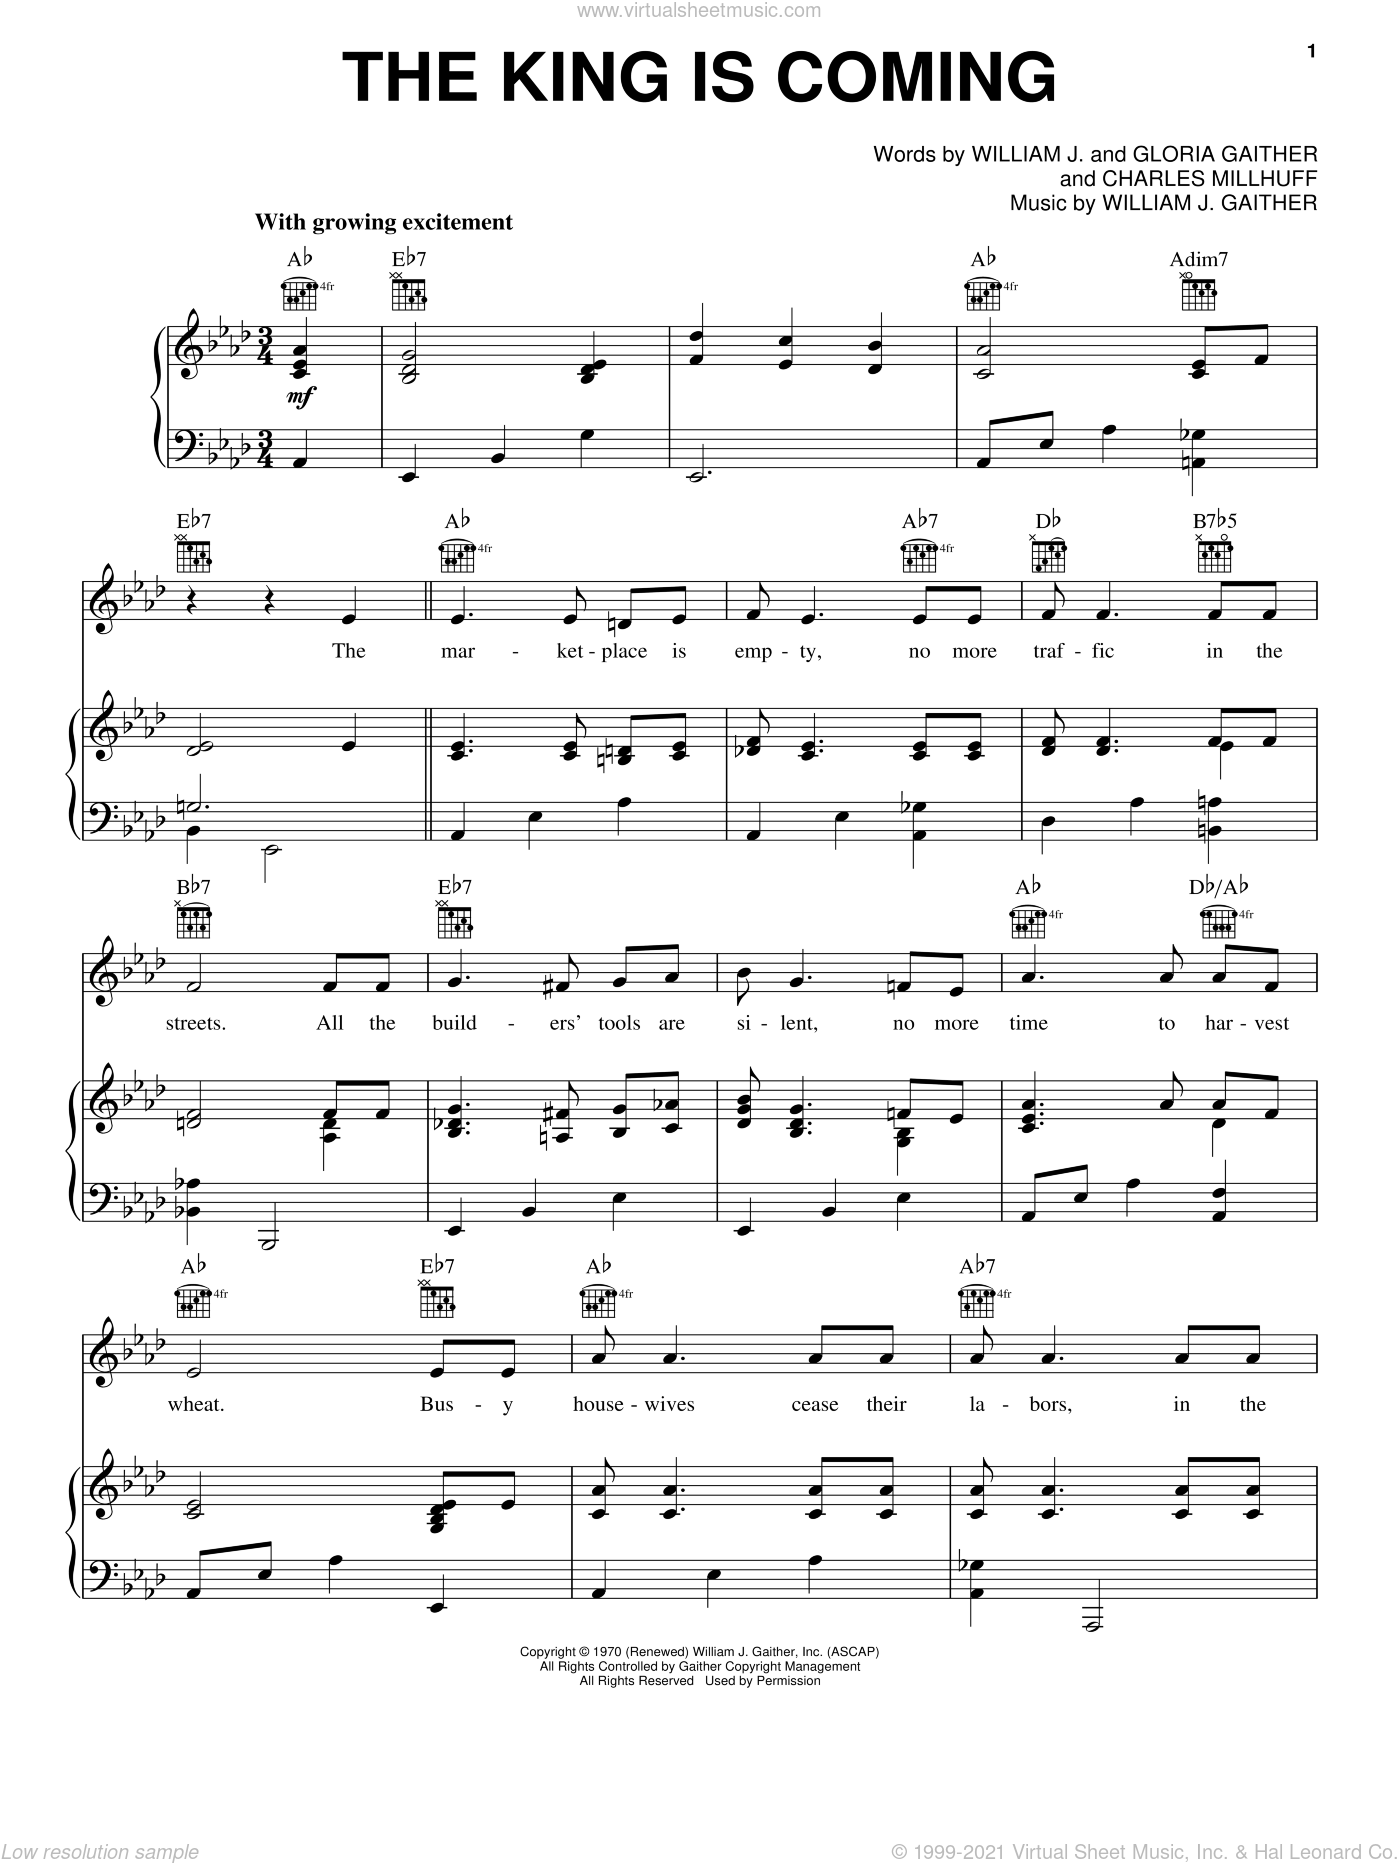 The King Is Coming sheet music for voice, piano or guitar by Gloria Gaither, Charles Millhuff and William J. Gaither. Score Image Preview.